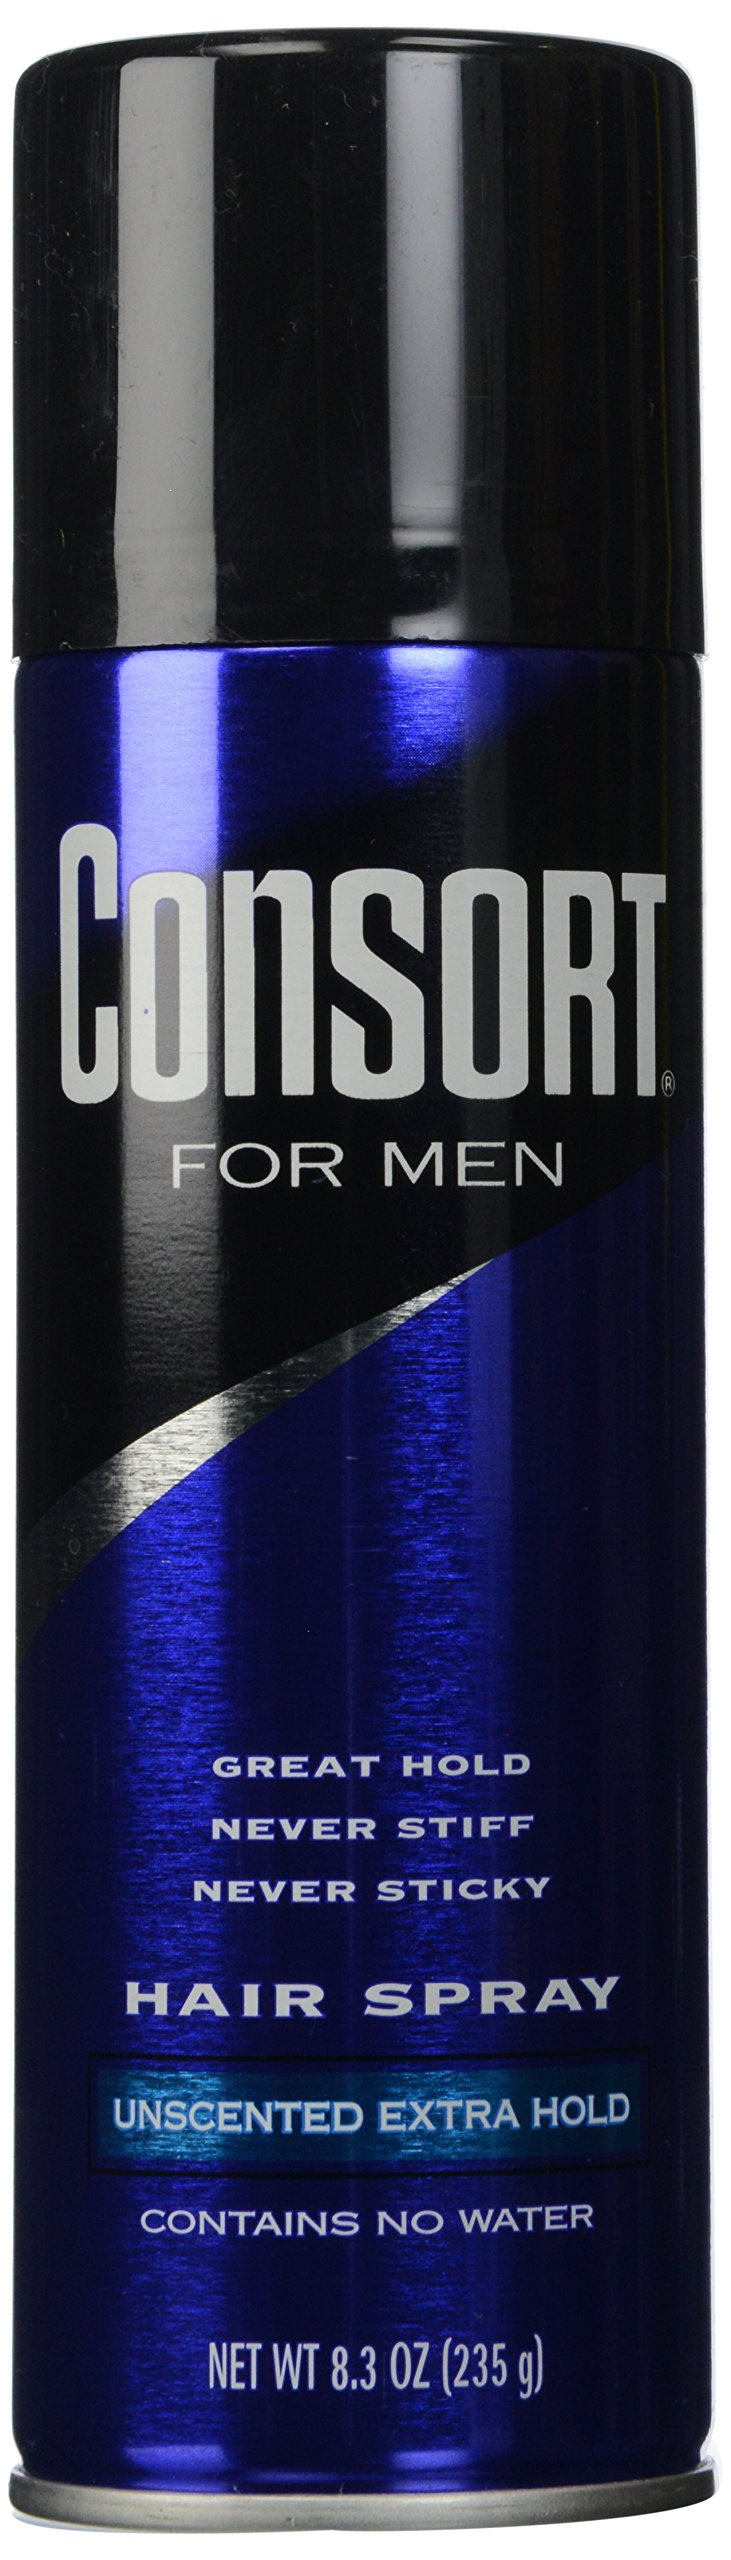 Consort For Men Hair Spray Aerosol Unscented Extra Hold 8.30 oz.